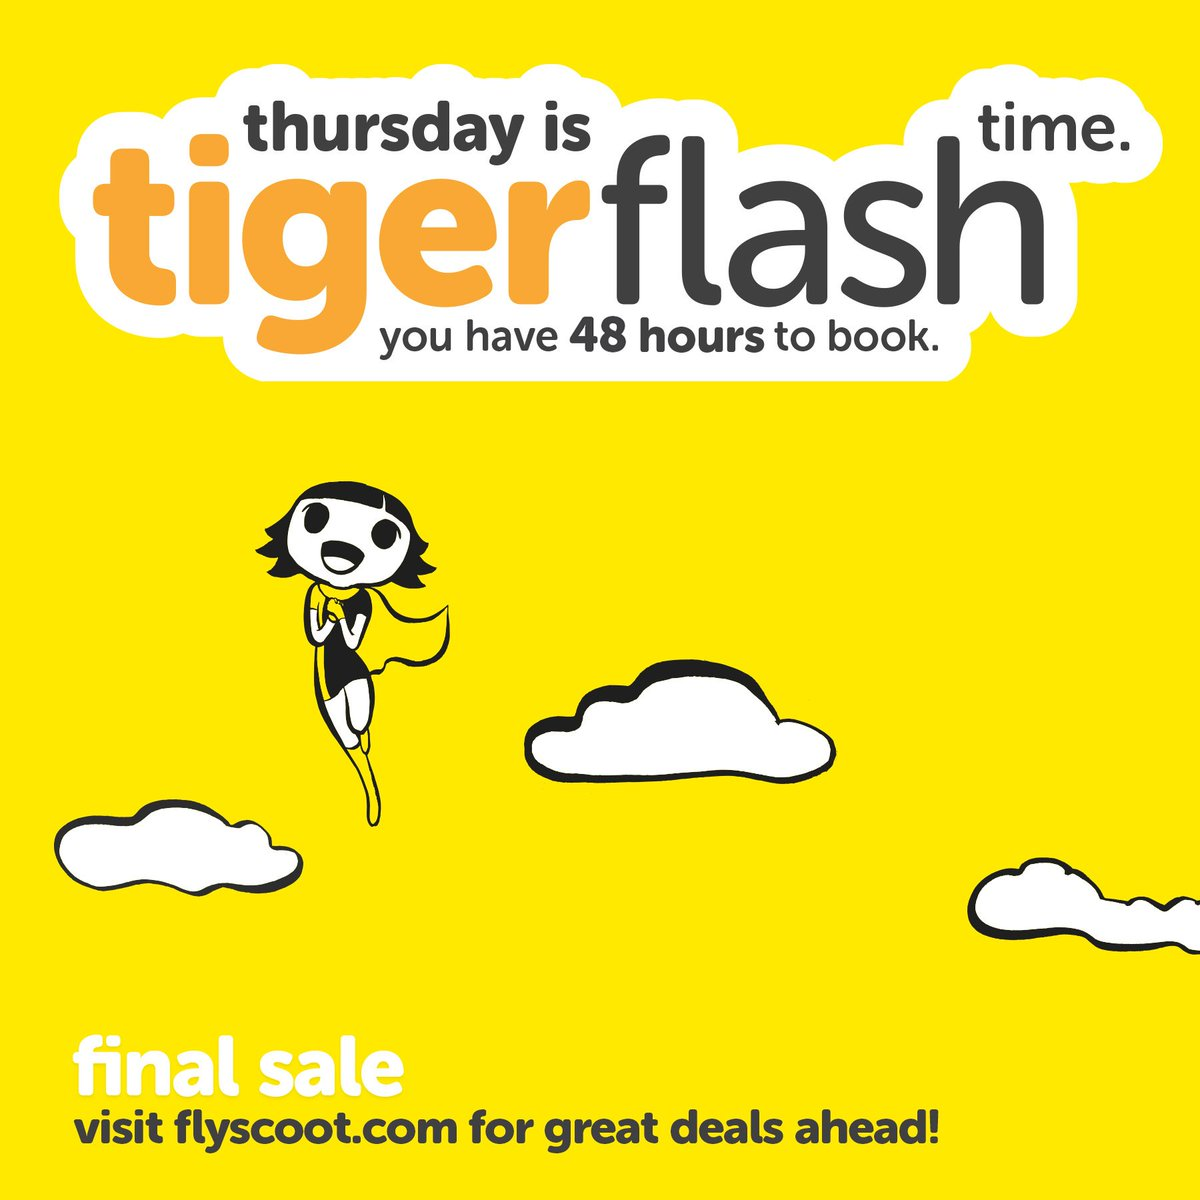 It's our final #Tigerflash before we become one with @FlyScoot! 45 destinations on sale from $38*, grab these deals https://t.co/7YShdBvF5f https://t.co/eXCg0KOeYF